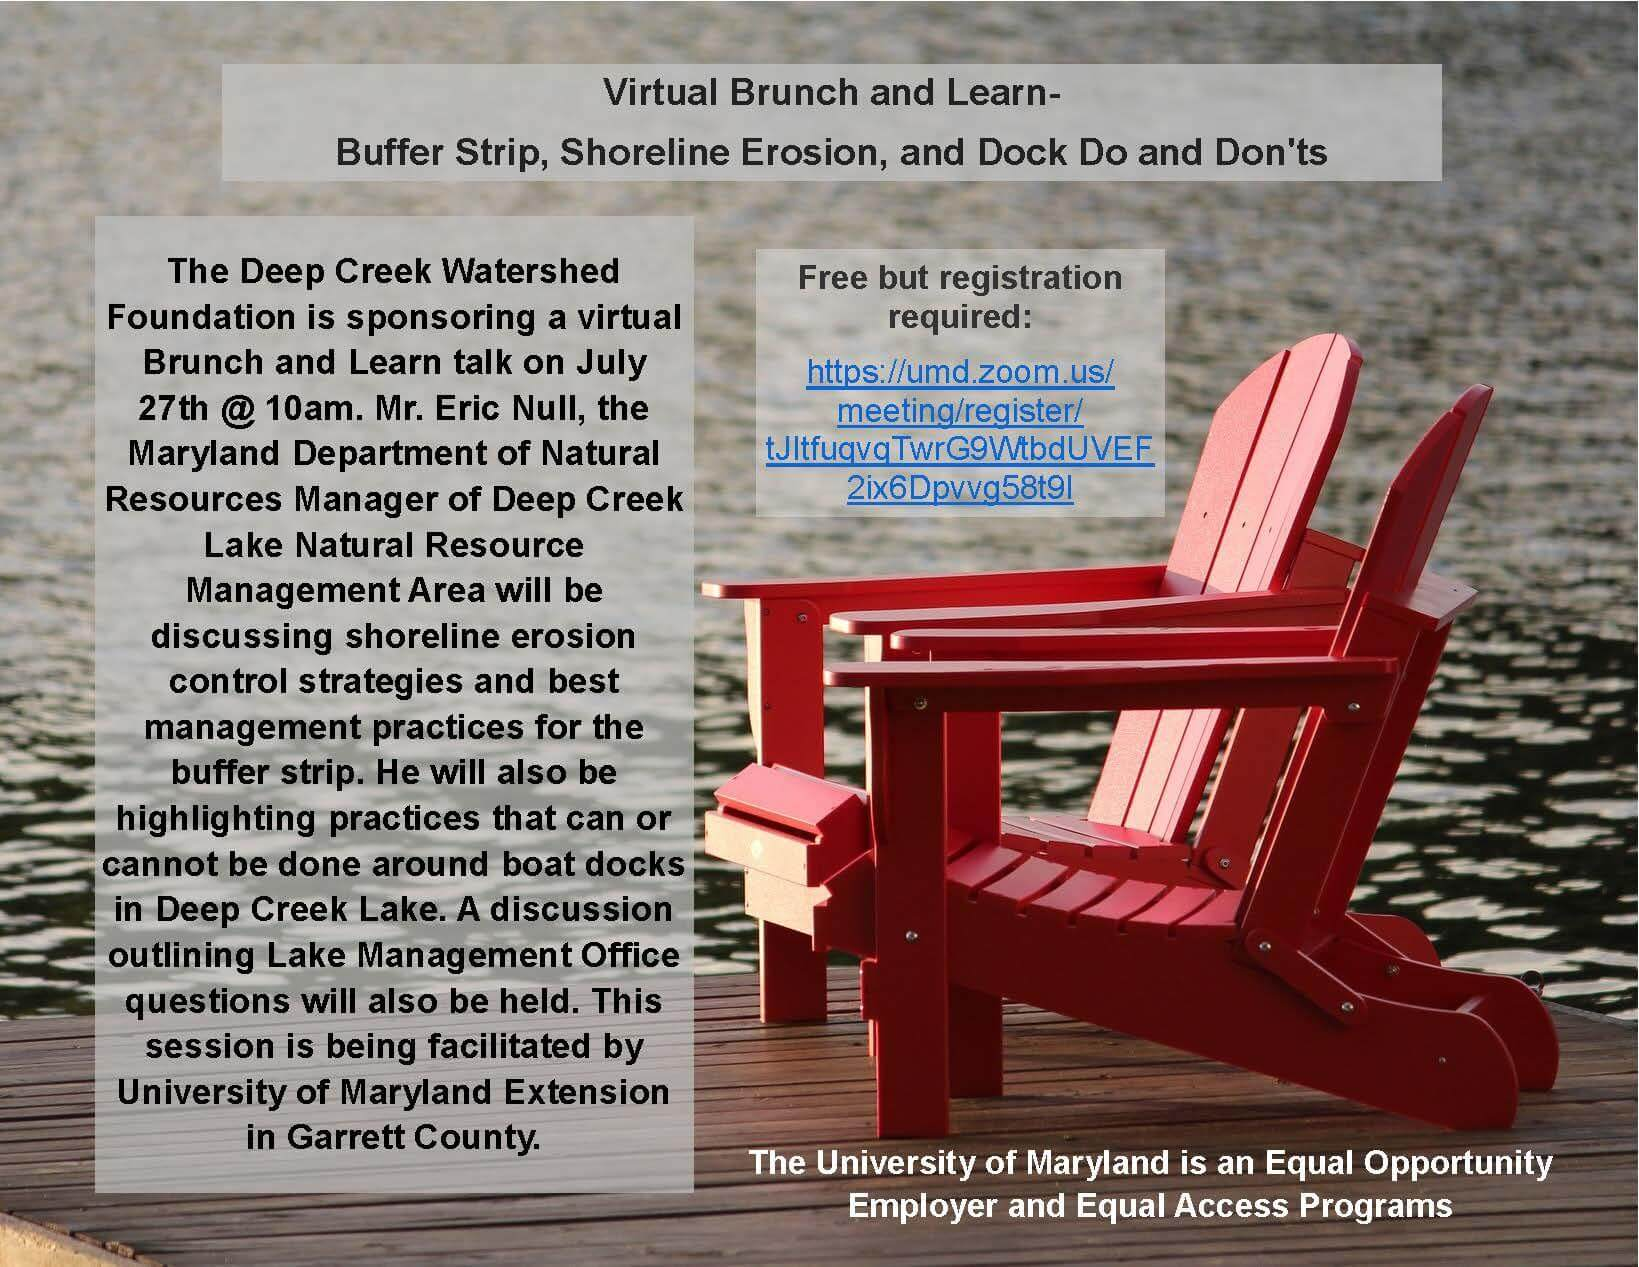 Virtual Brunch and Learn